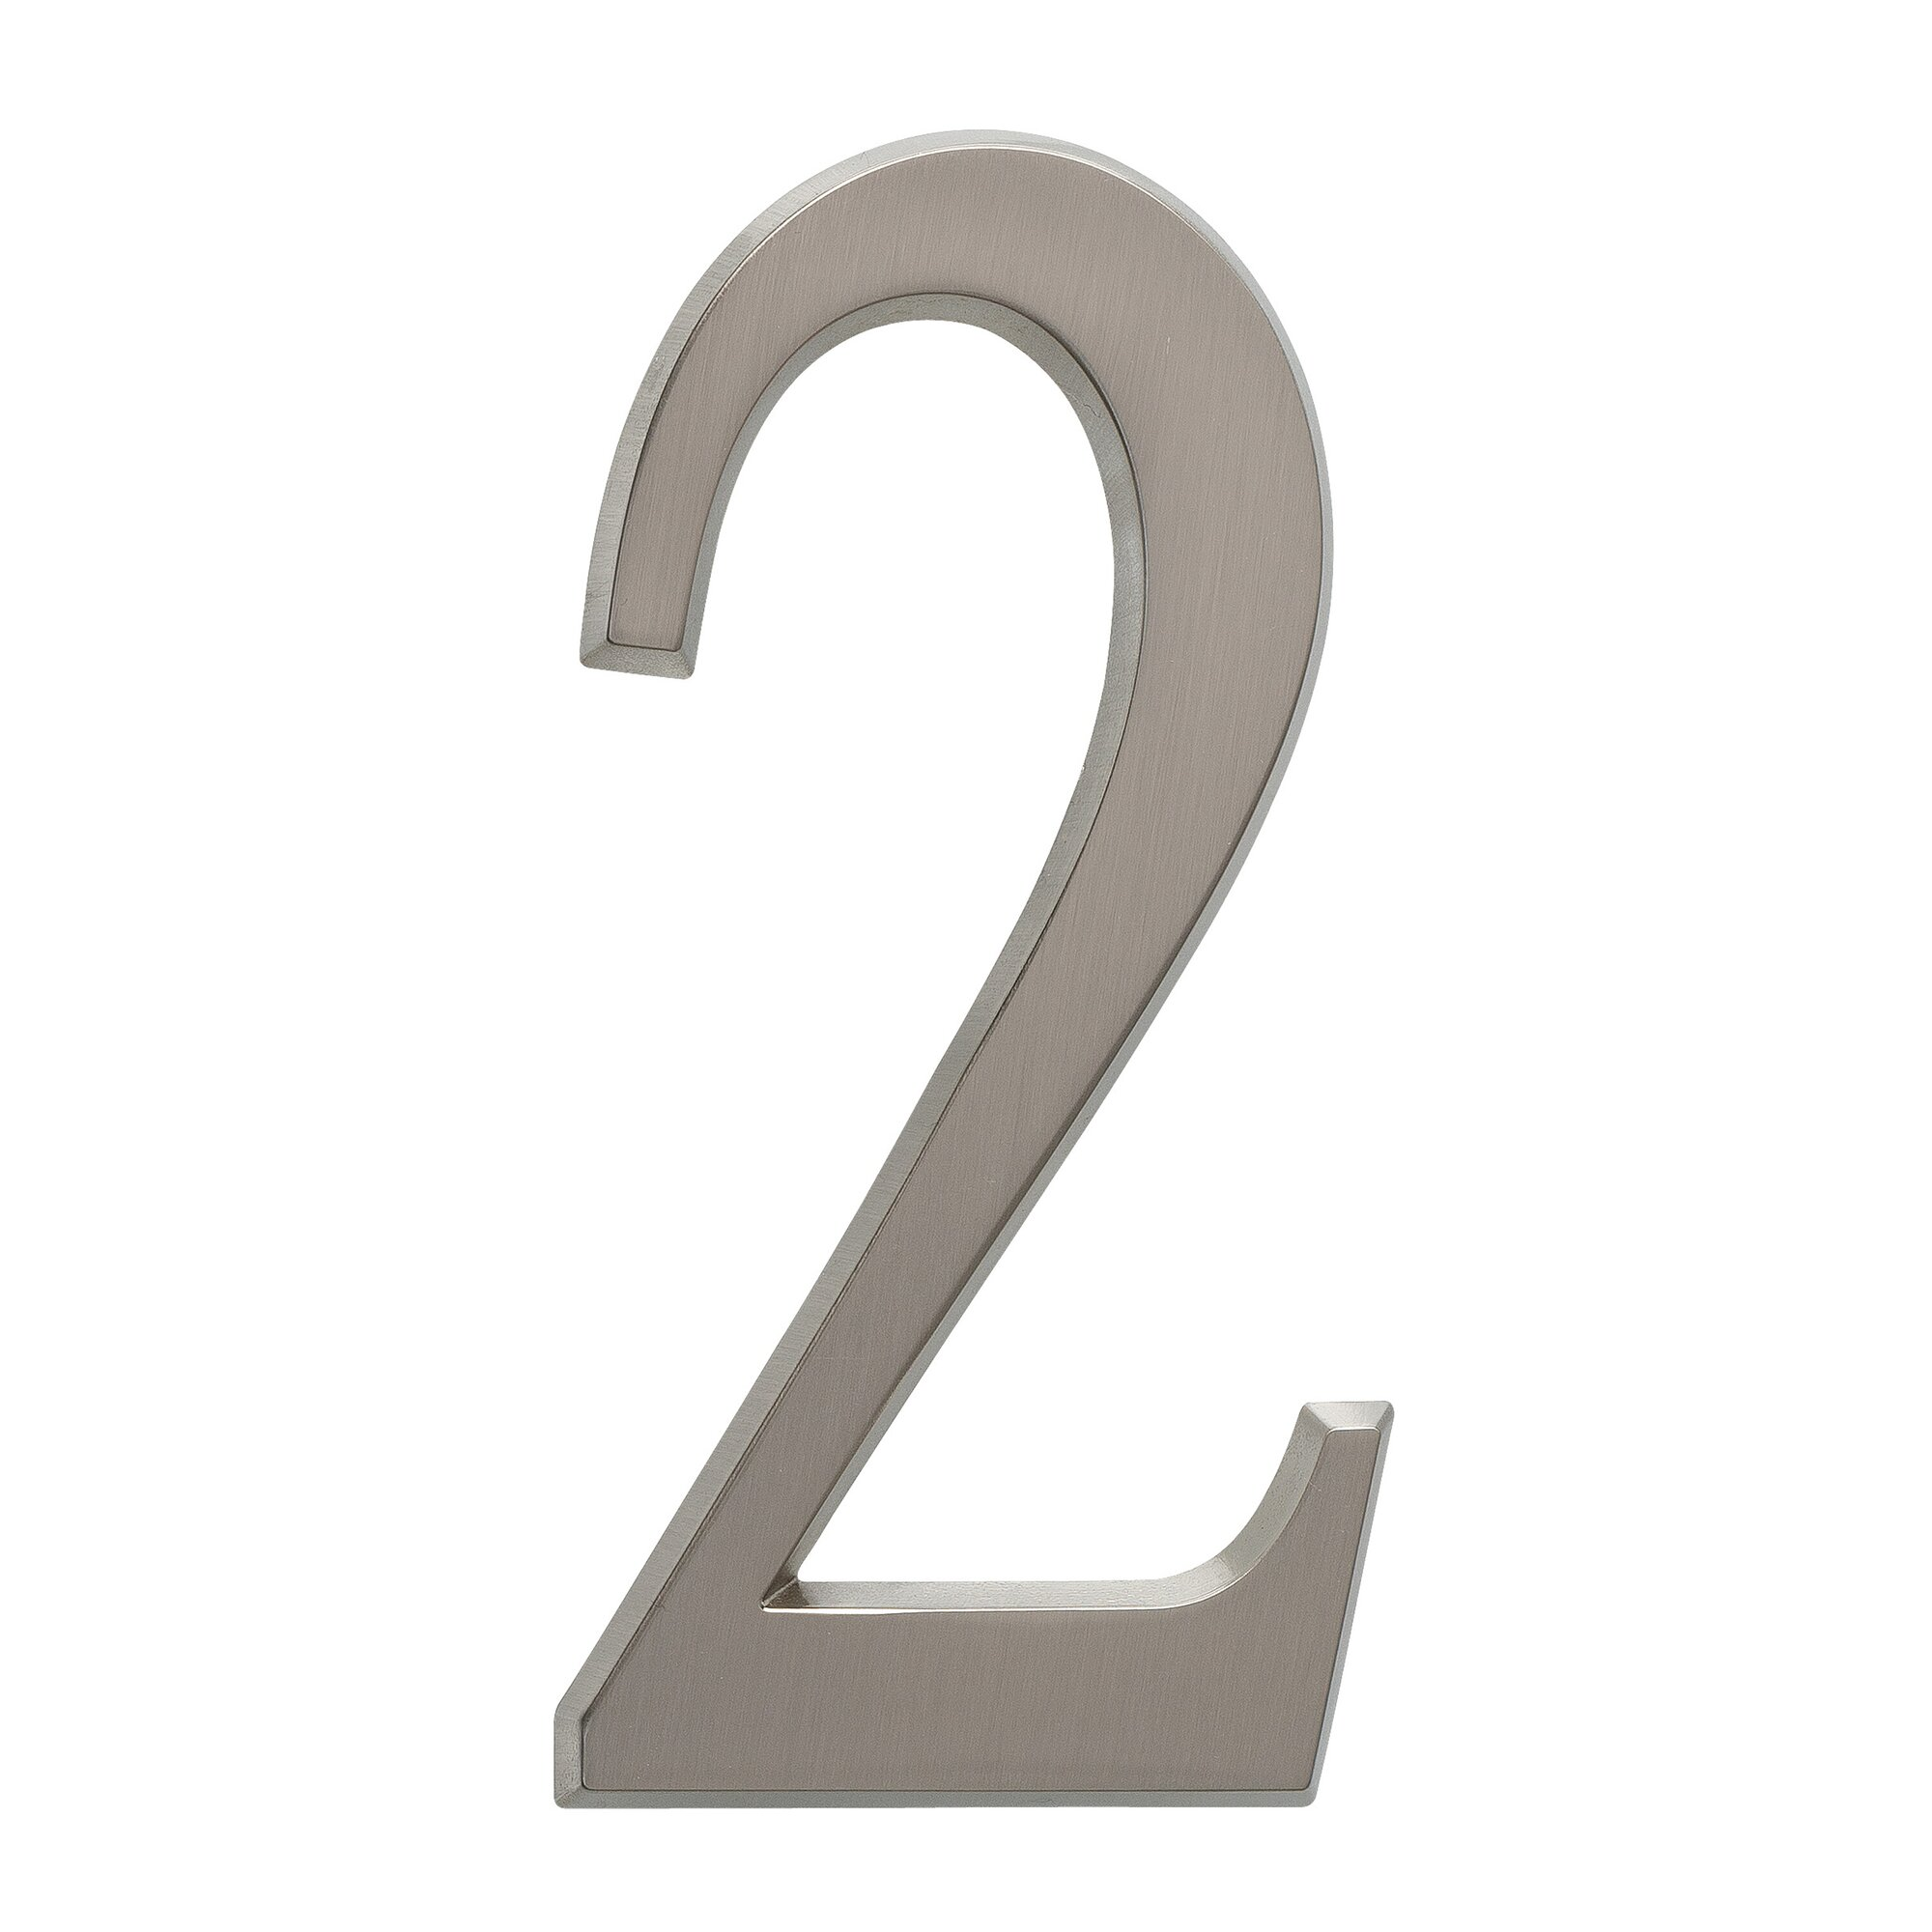 Classic house number reviews birch lane for Classic house numbers